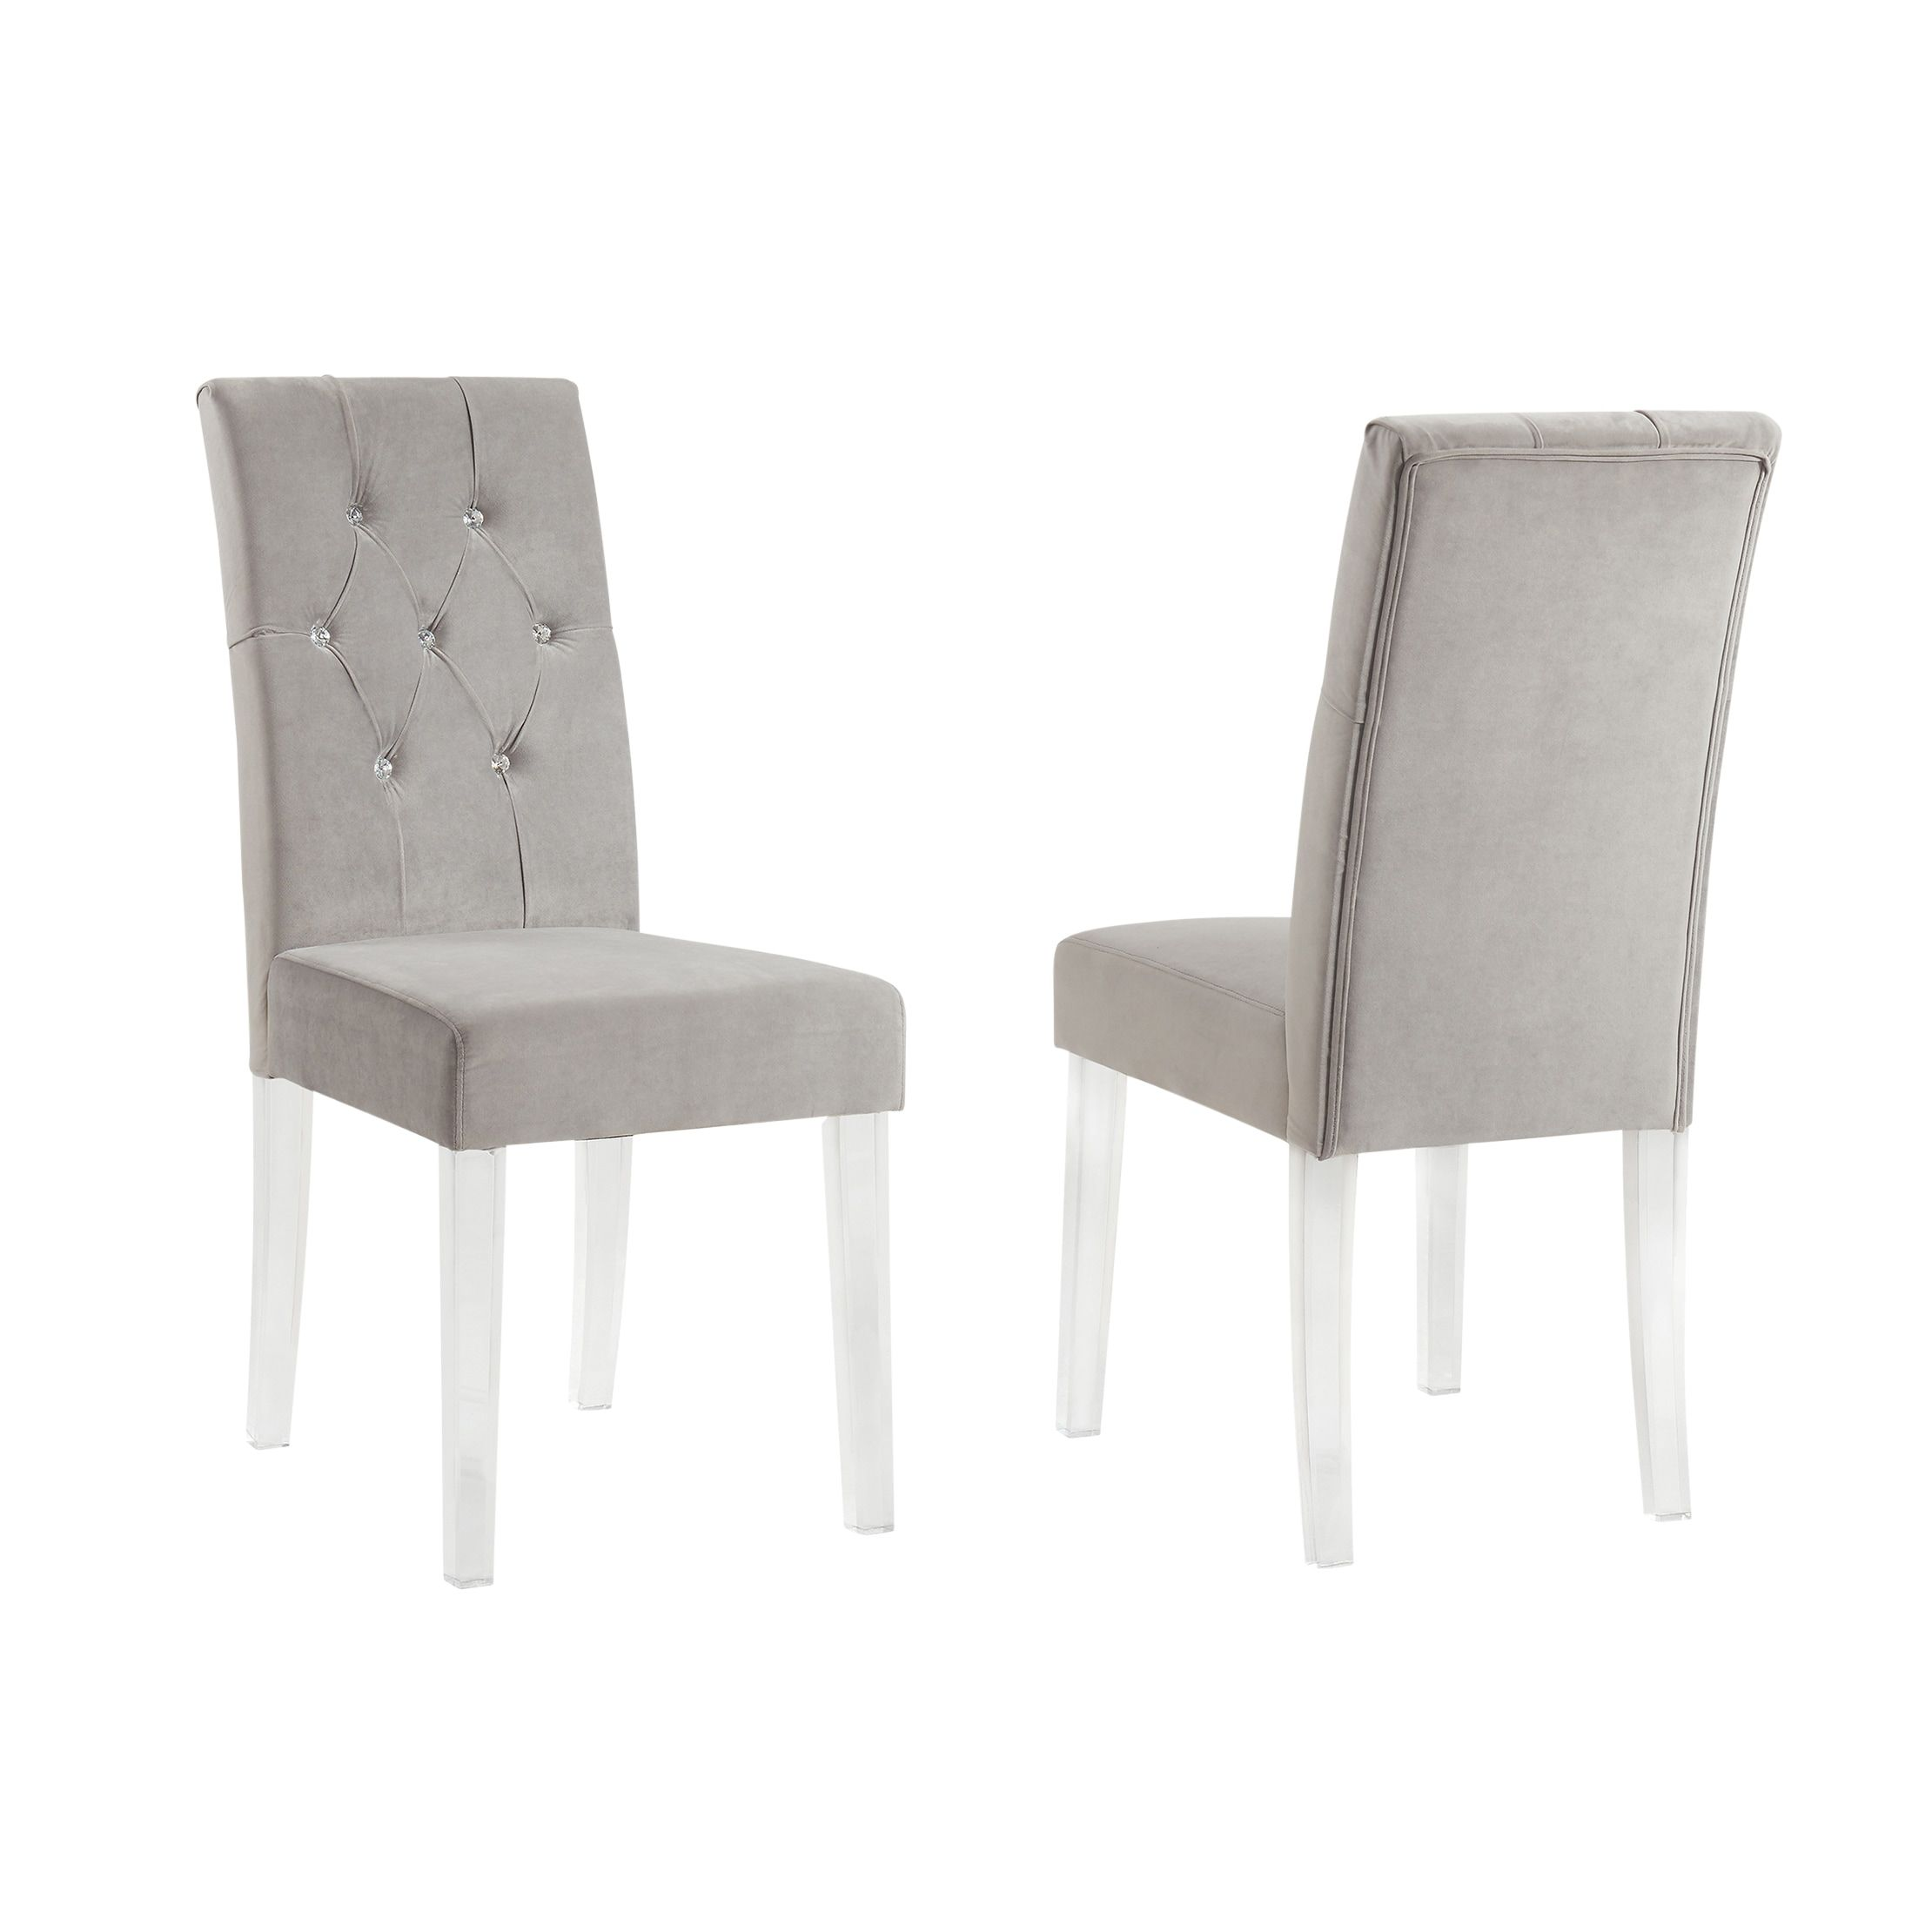 Studded Dining Chairs Cavalli Crystal Studded Velvet Dining Chairs With Acrylic Legs